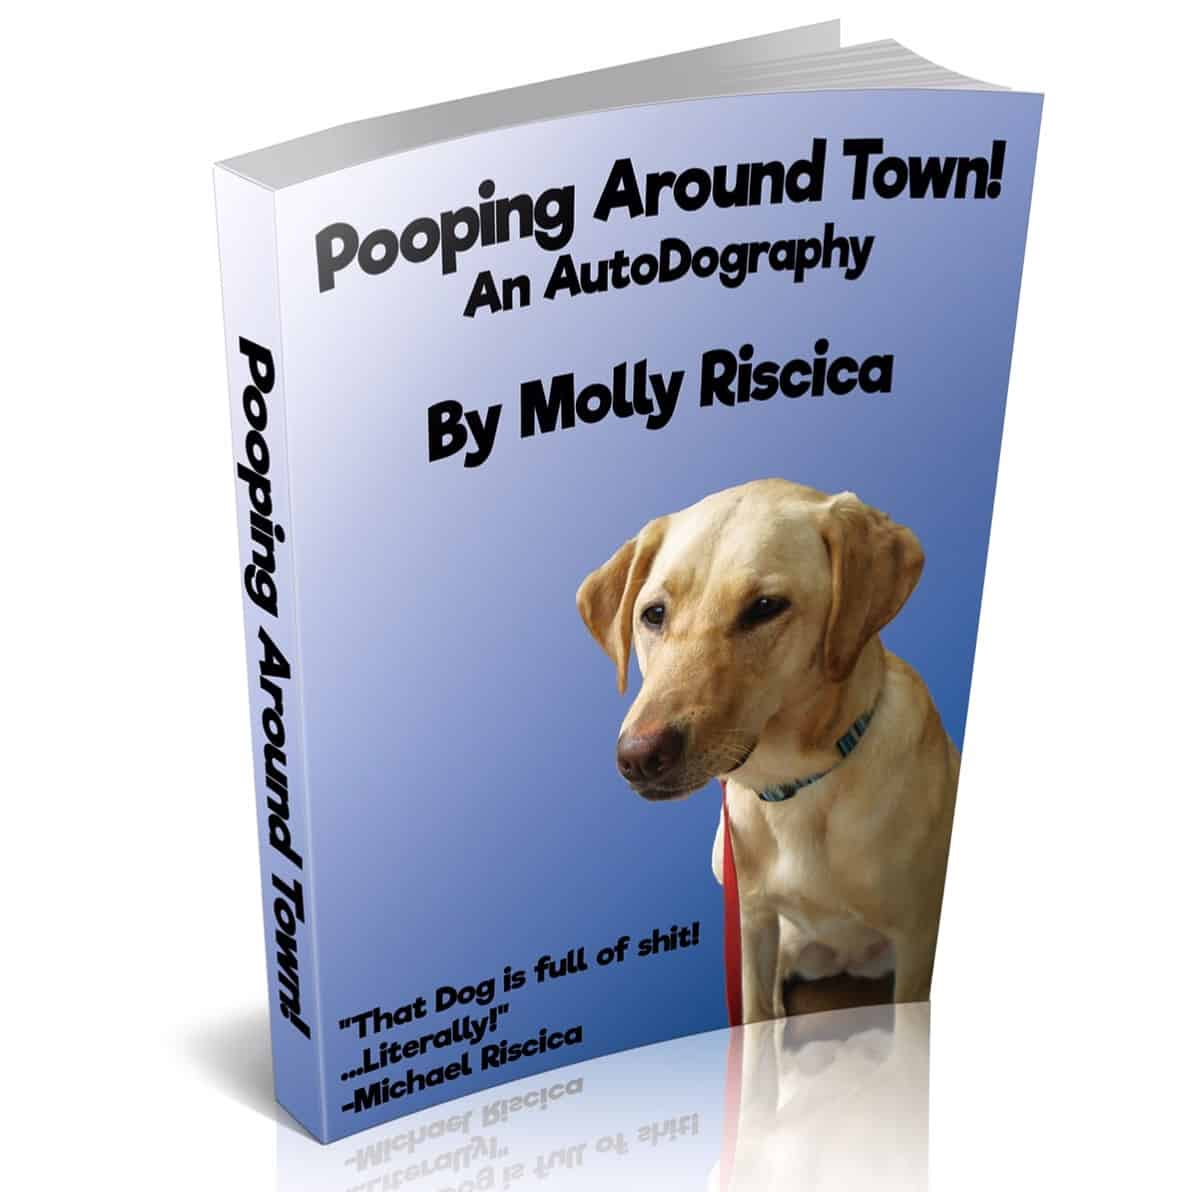 Congrats to Molly Riscica for finishing her first book!!! #labsofinstagram #mollyriscica #labrador #bestseller #yellowlaboftheday #entrepreneur #autobiography #byadog #downdog #updog #gooddog #tougueouttuesday #caturday #portlanddogs #firstbook